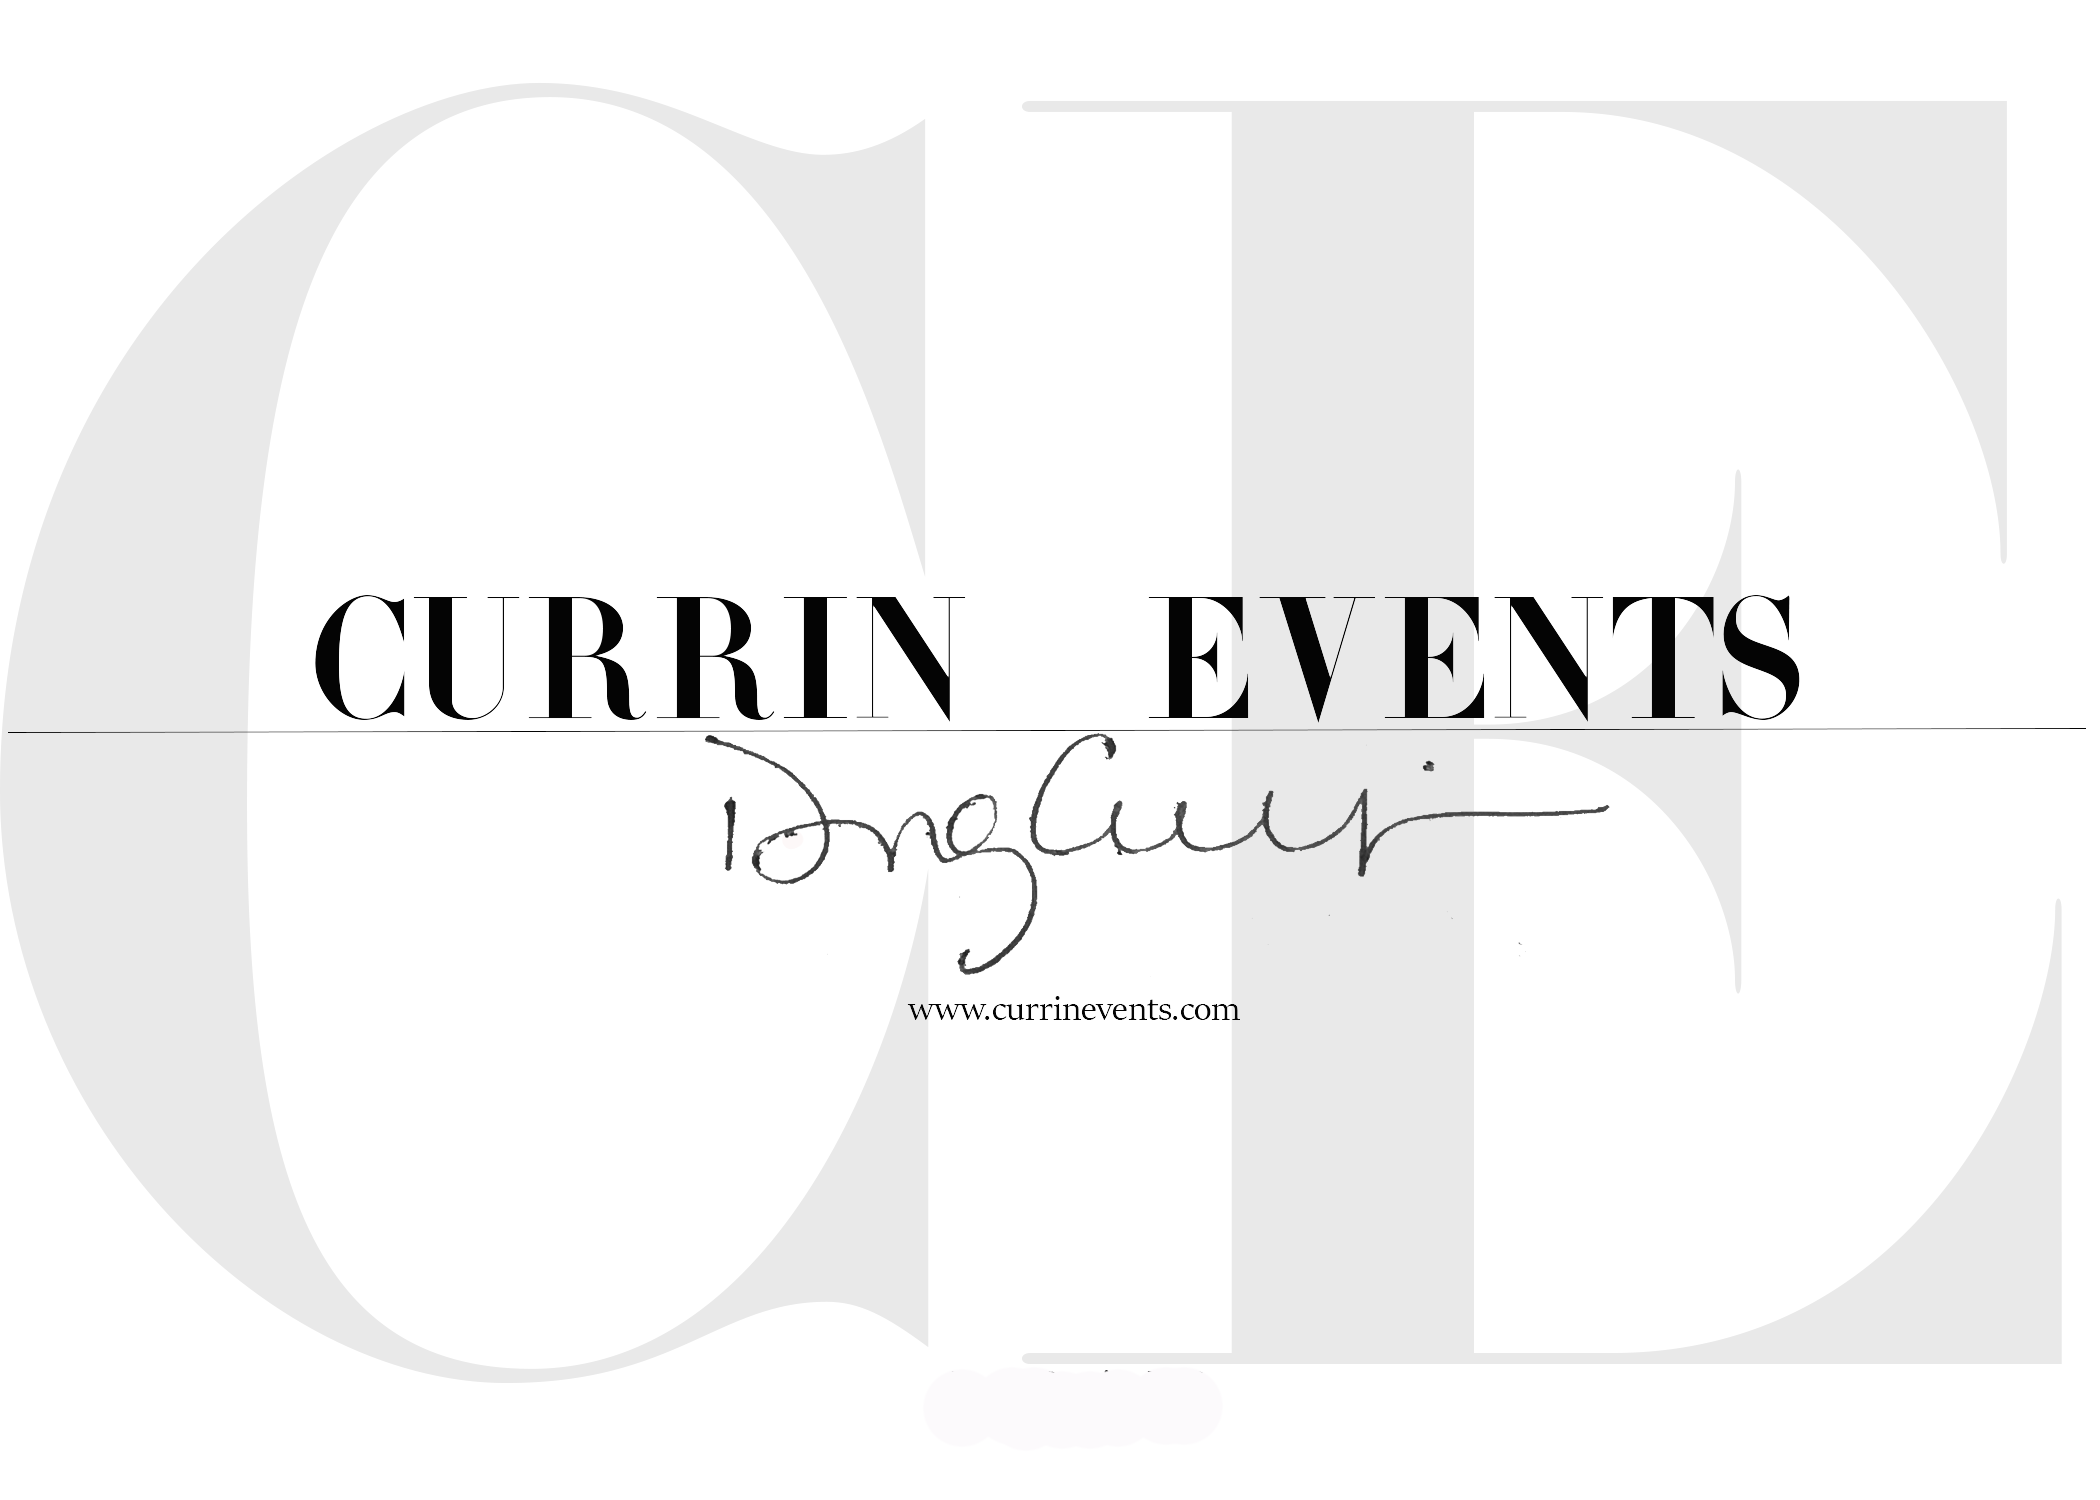 currin events